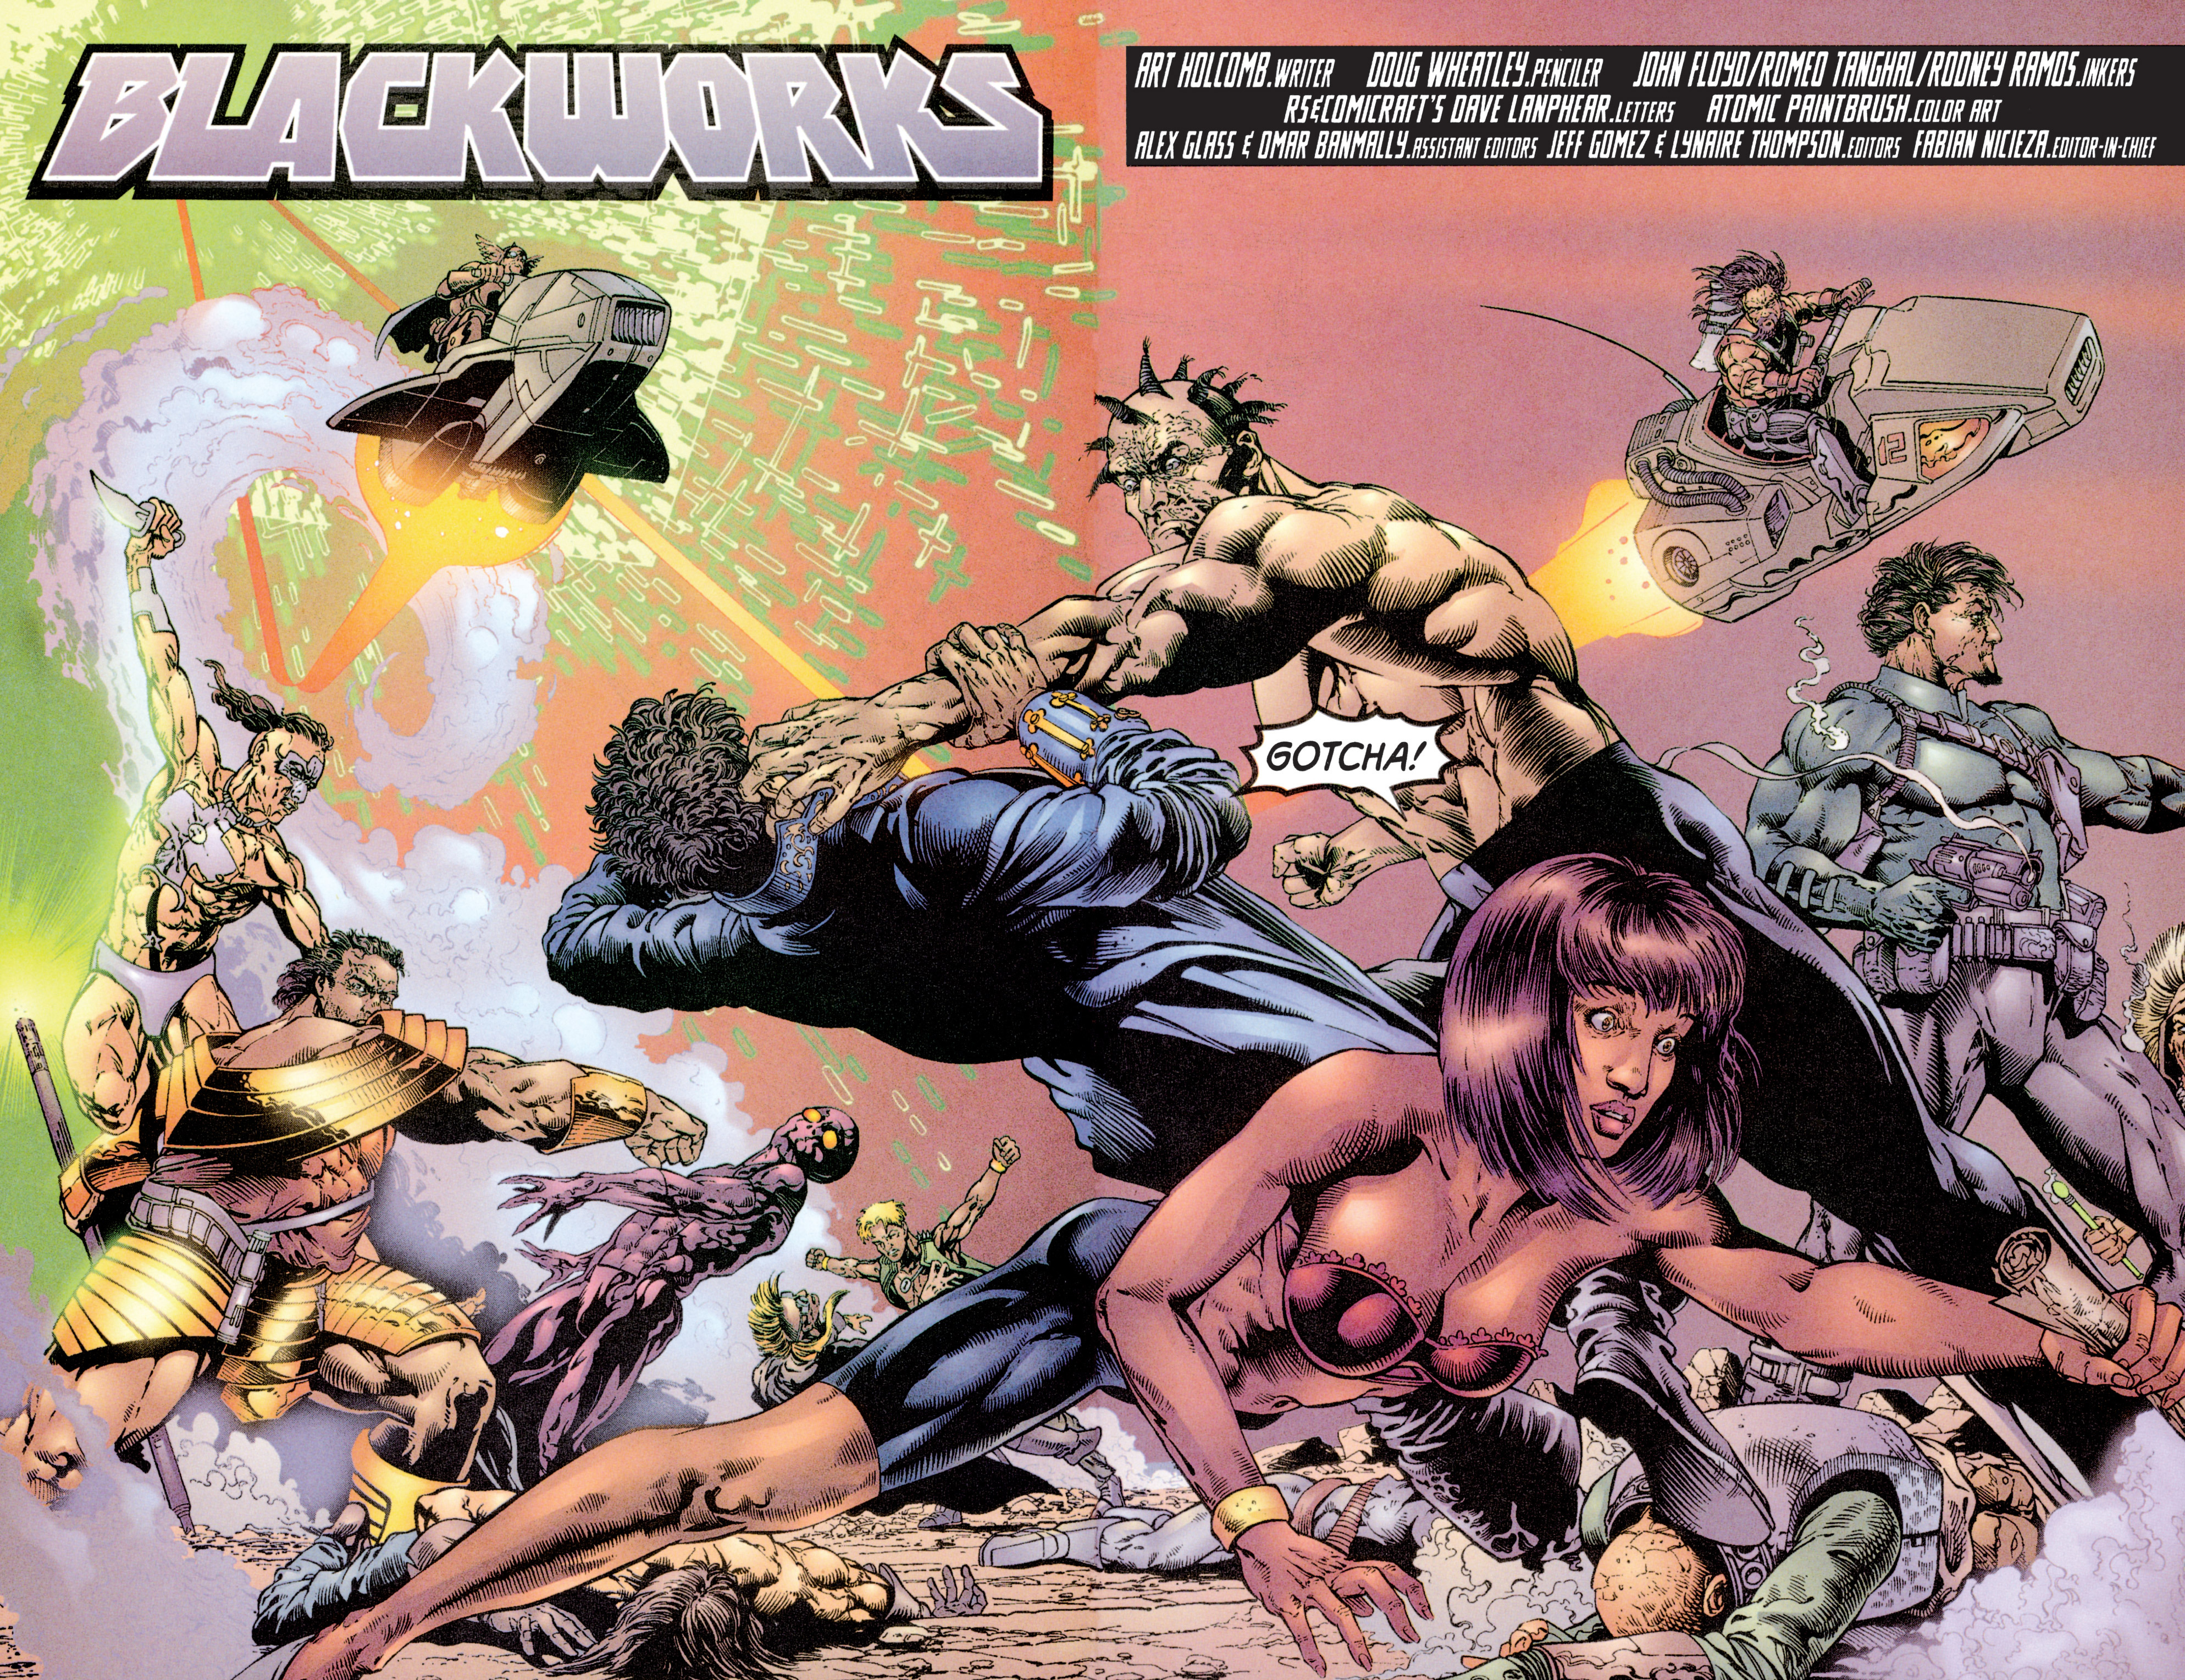 Read online Eternal Warriors comic -  Issue # Issue Blackworks - 3